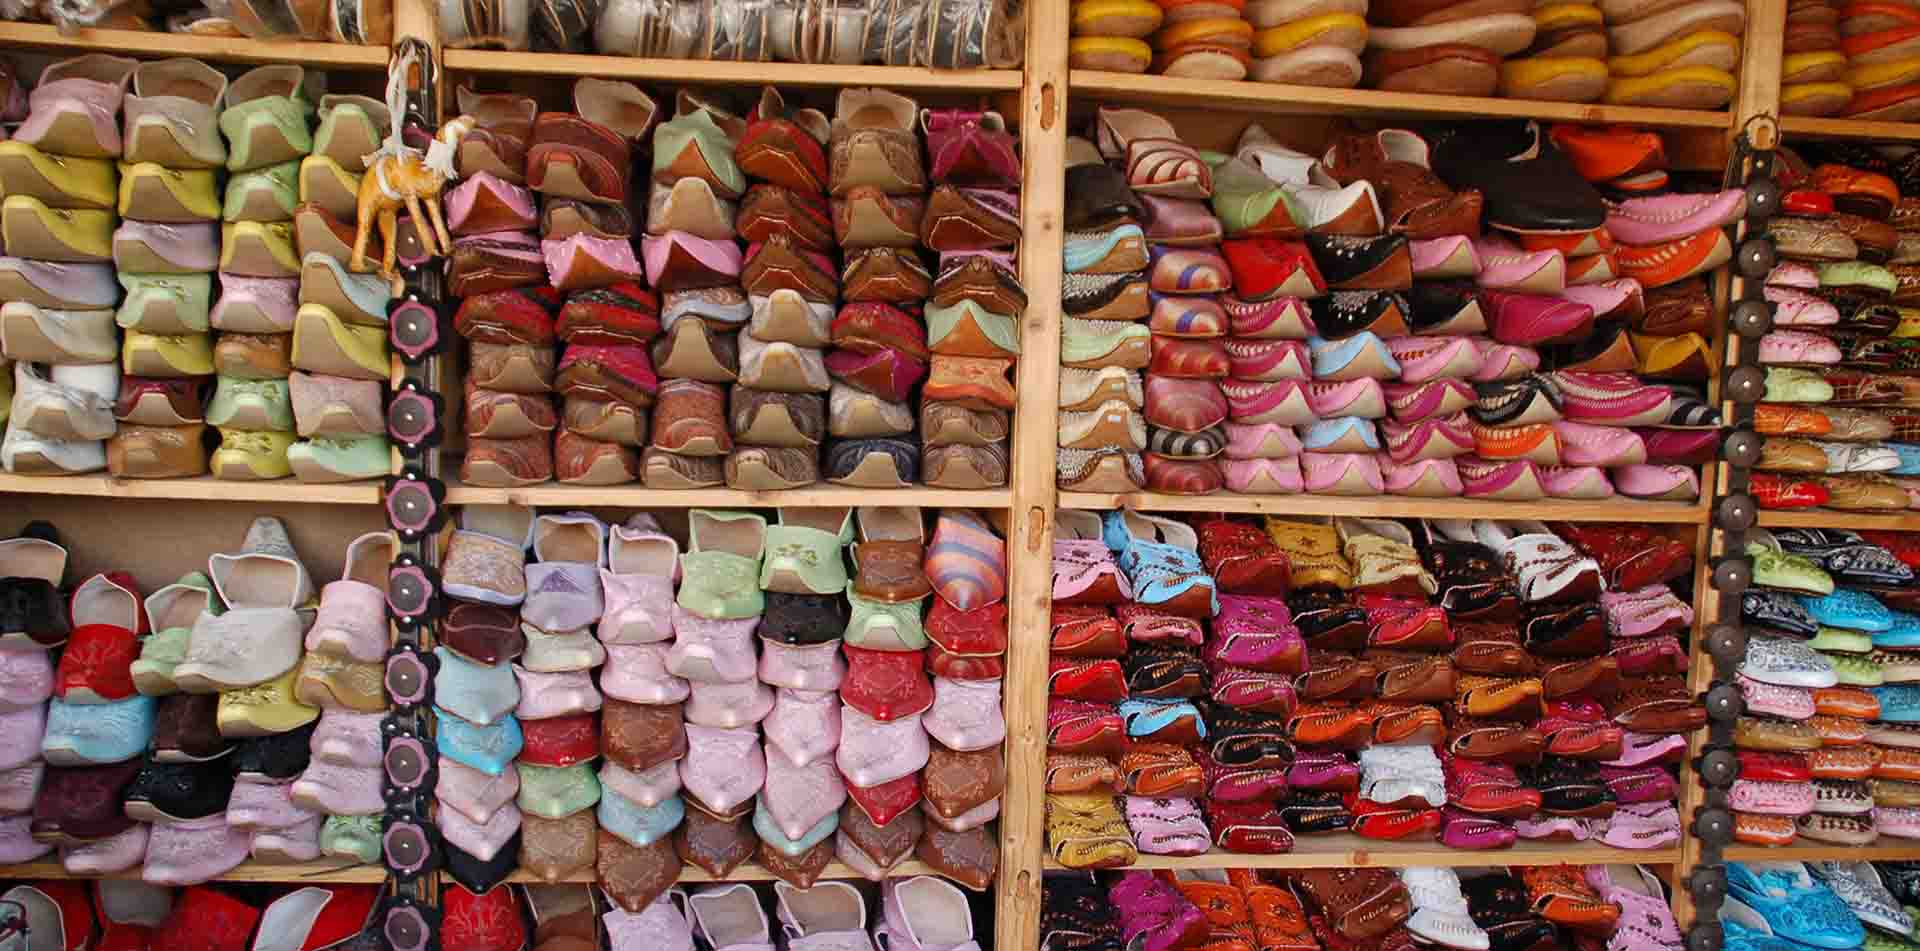 Africa Morocco traditional colorful handmade Moroccan shoes for sale in souk - luxury vacation destinations